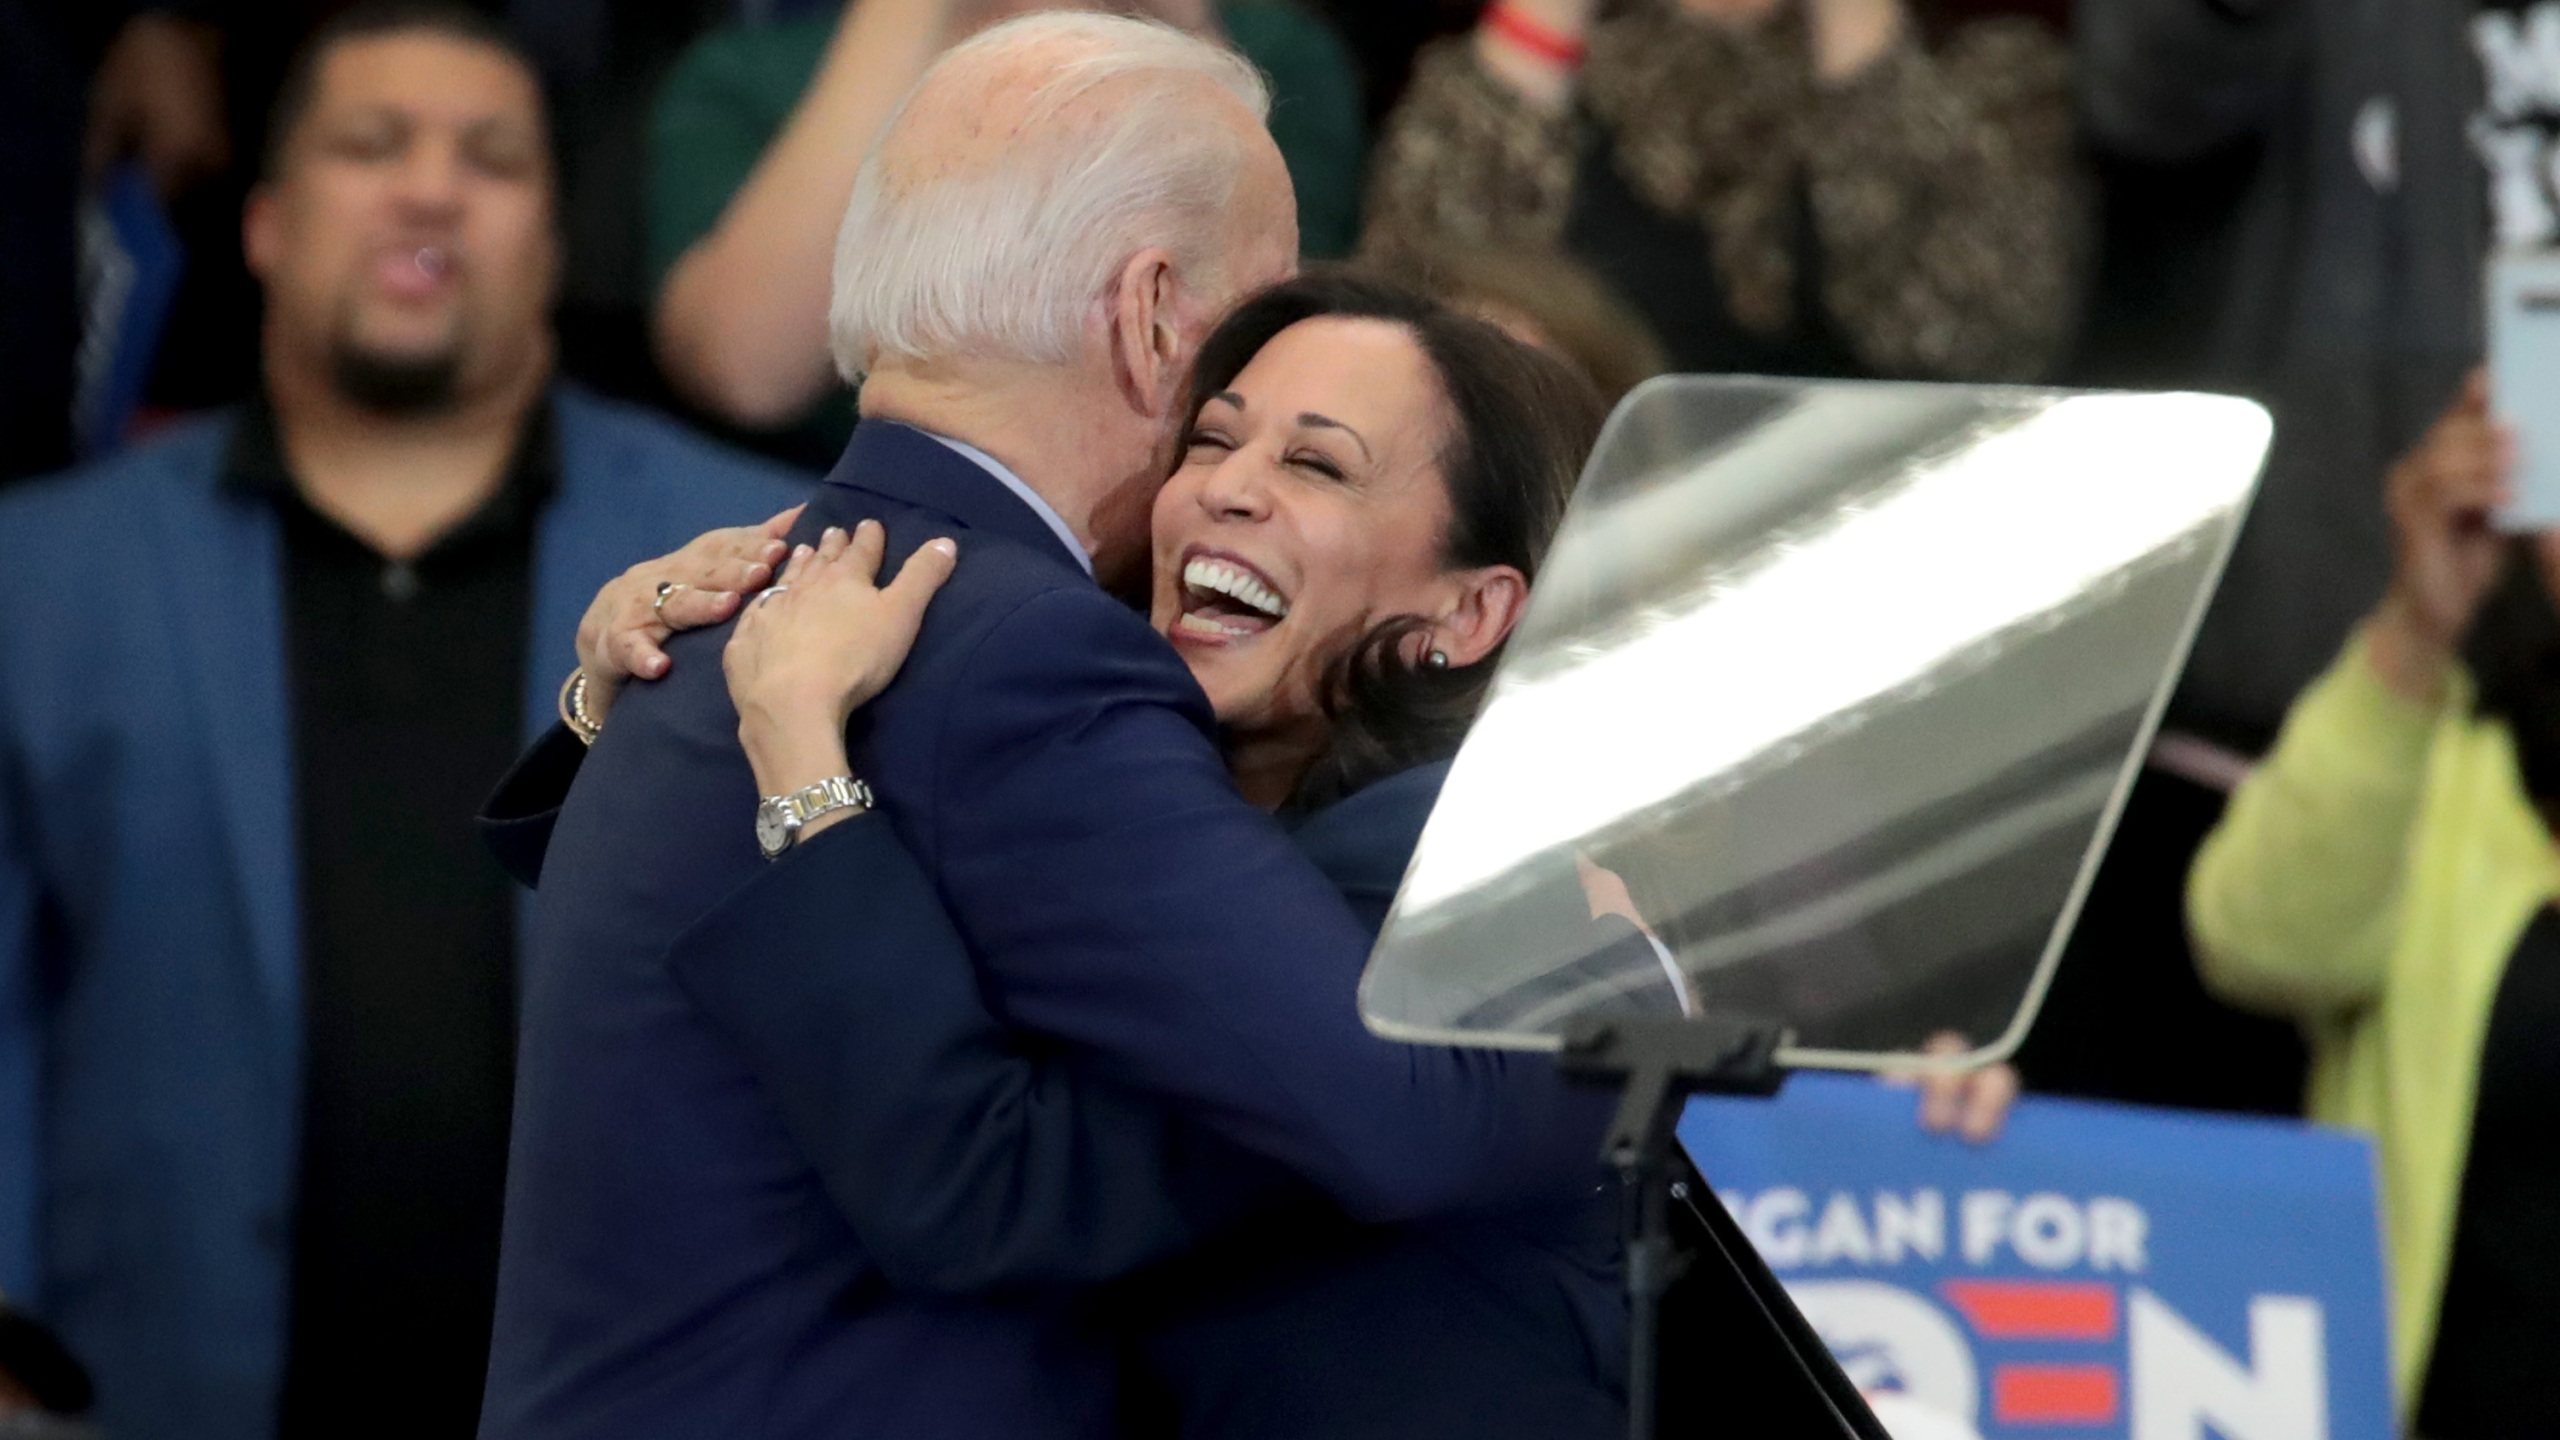 Sen. Kamala Harris (L) (D-CA), hugs Democratic presidential candidate former Vice President Joe Biden after introducing him at a campaign rally at Renaissance High School on March 09, 2020 in Detroit, Michigan. (Scott Olson/Getty Images)